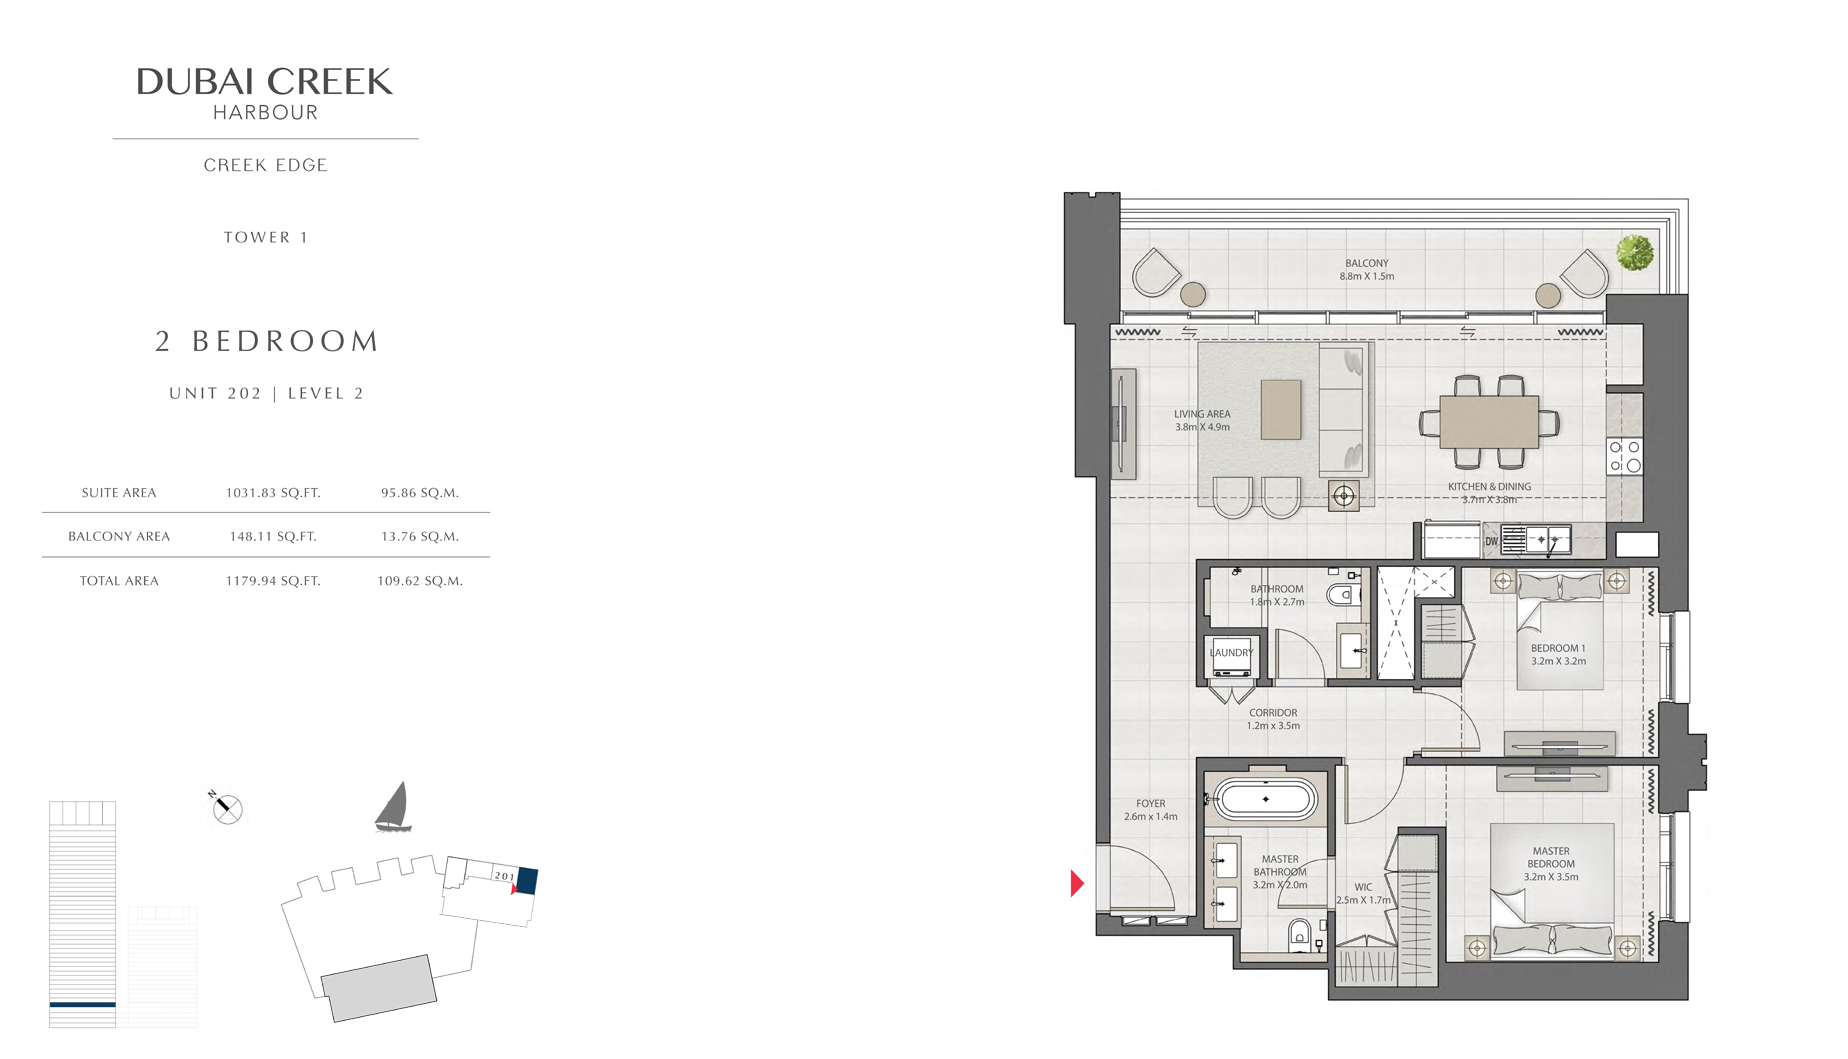 2 Bedroom Tower 1 Unit 202 Level 2 Size 1179 sq.ft